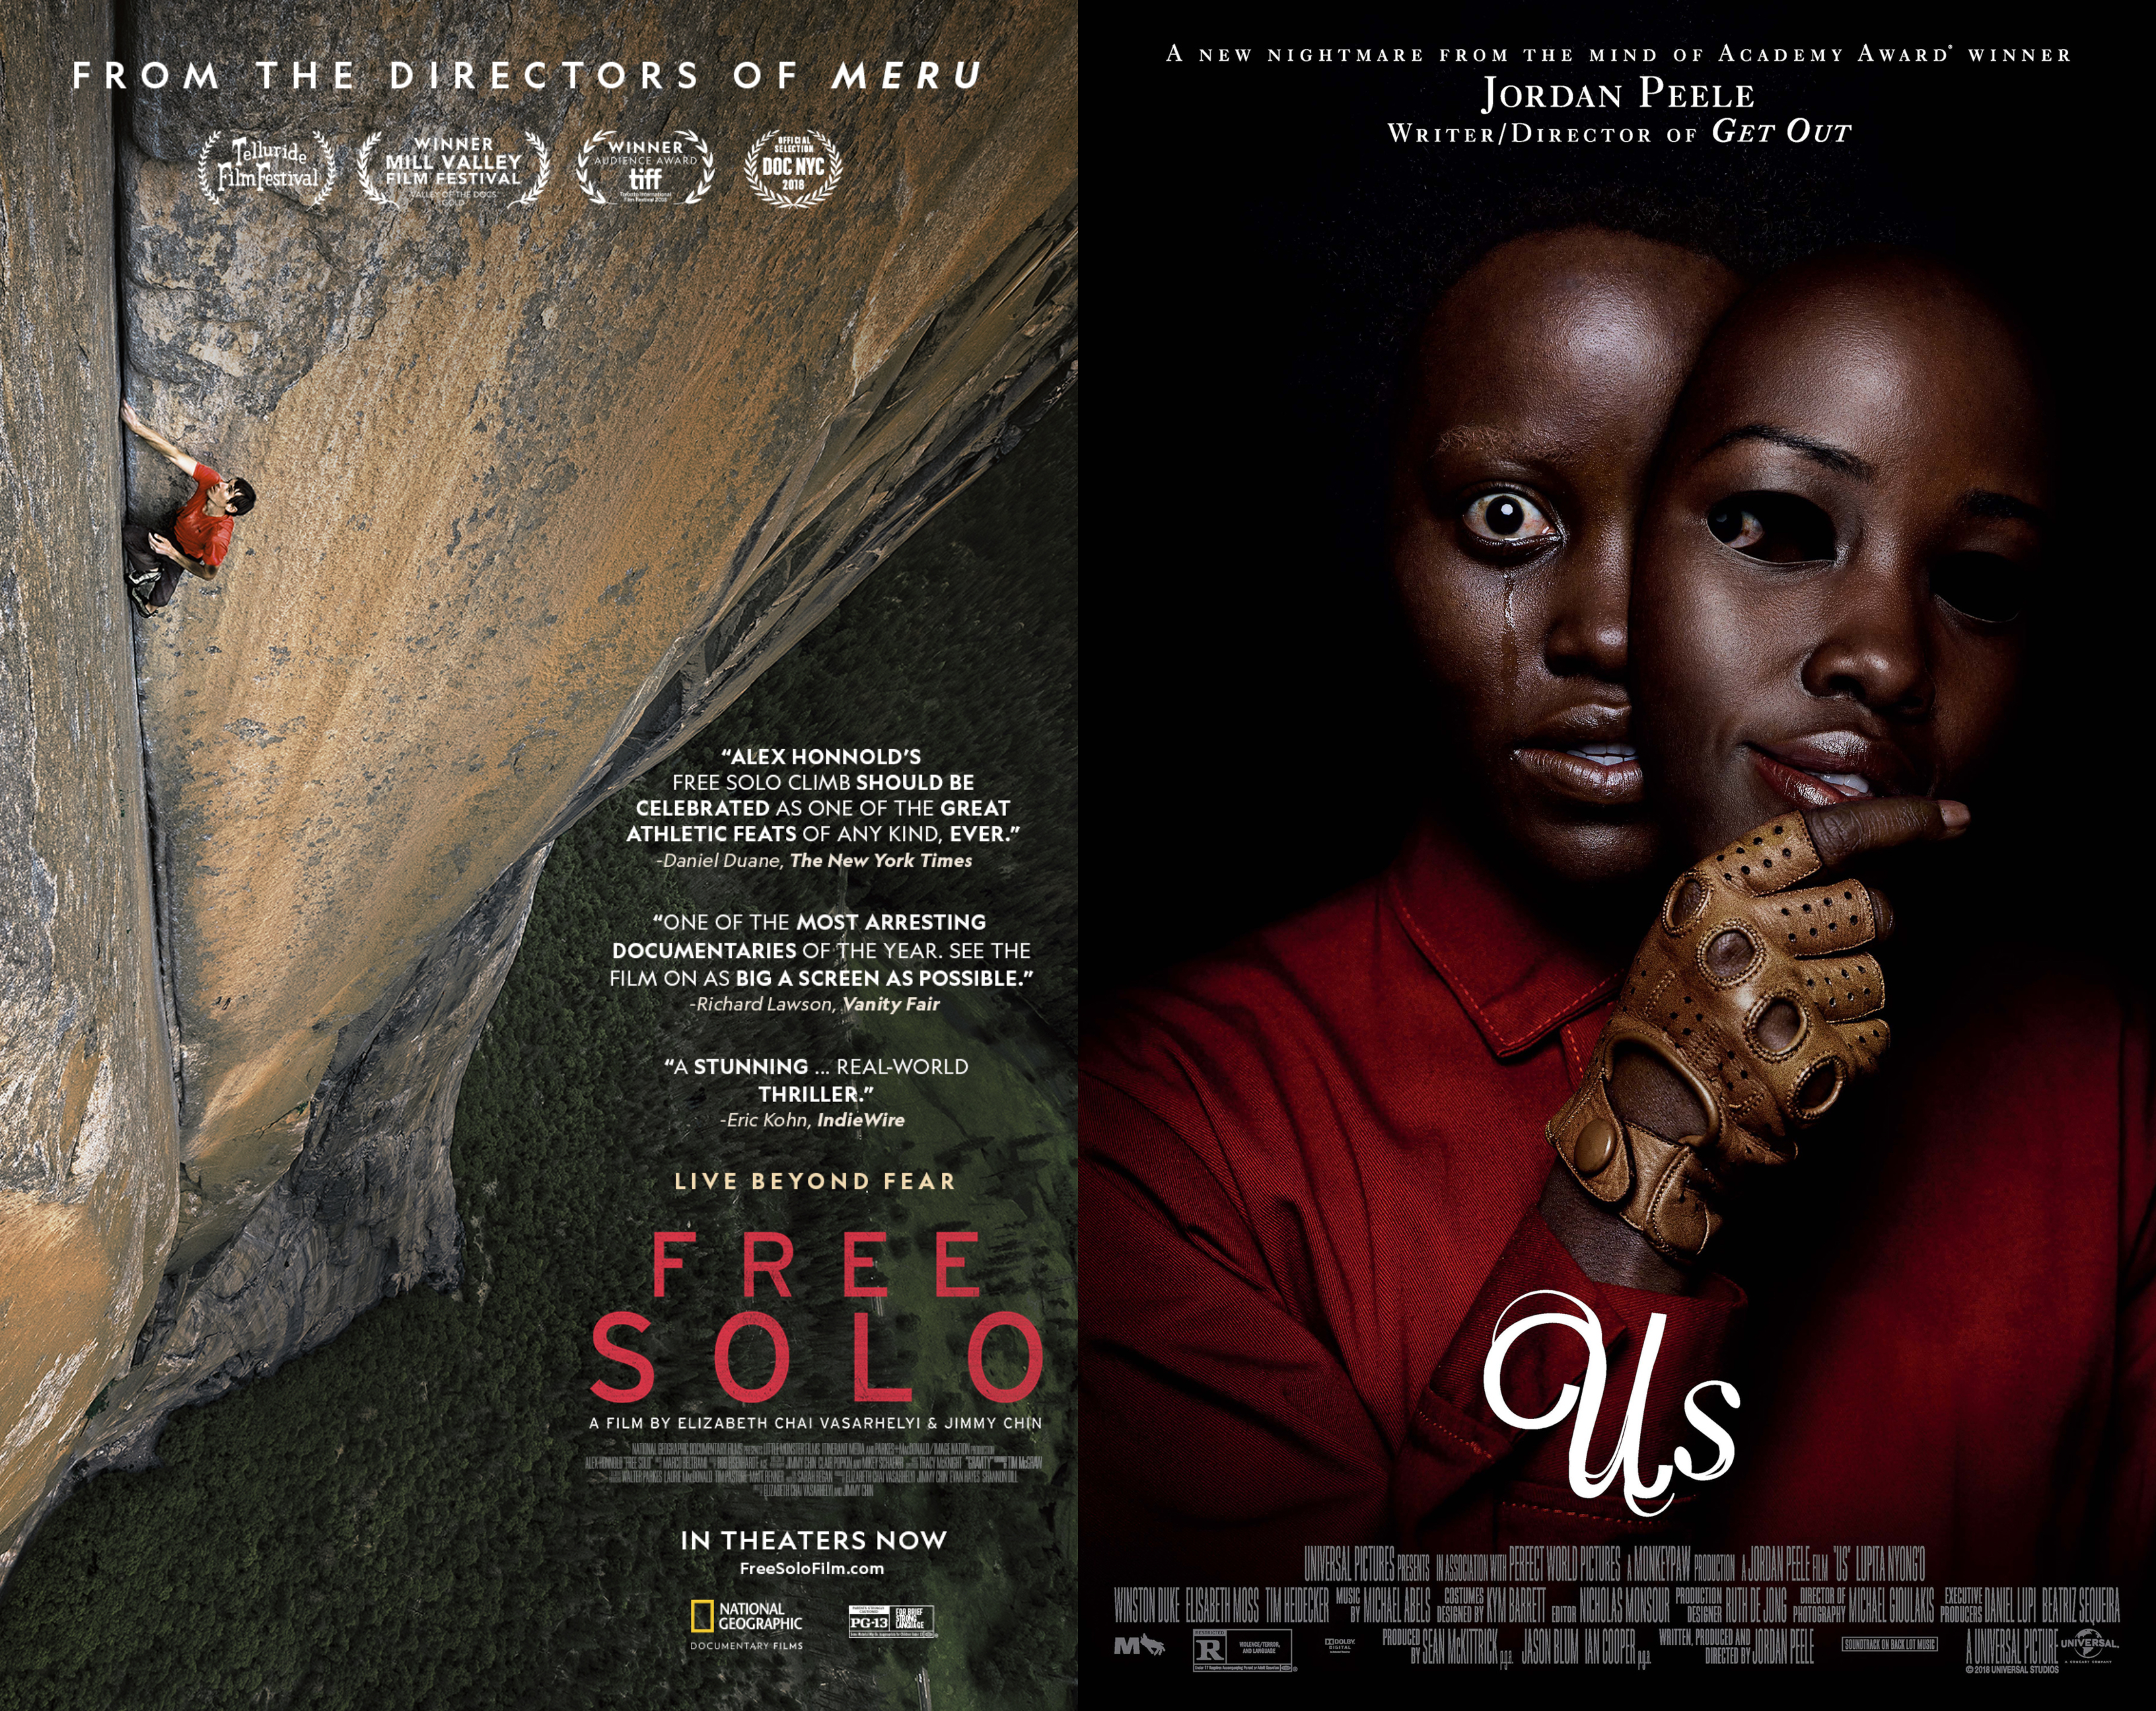 Movie of the month march 2019 winners